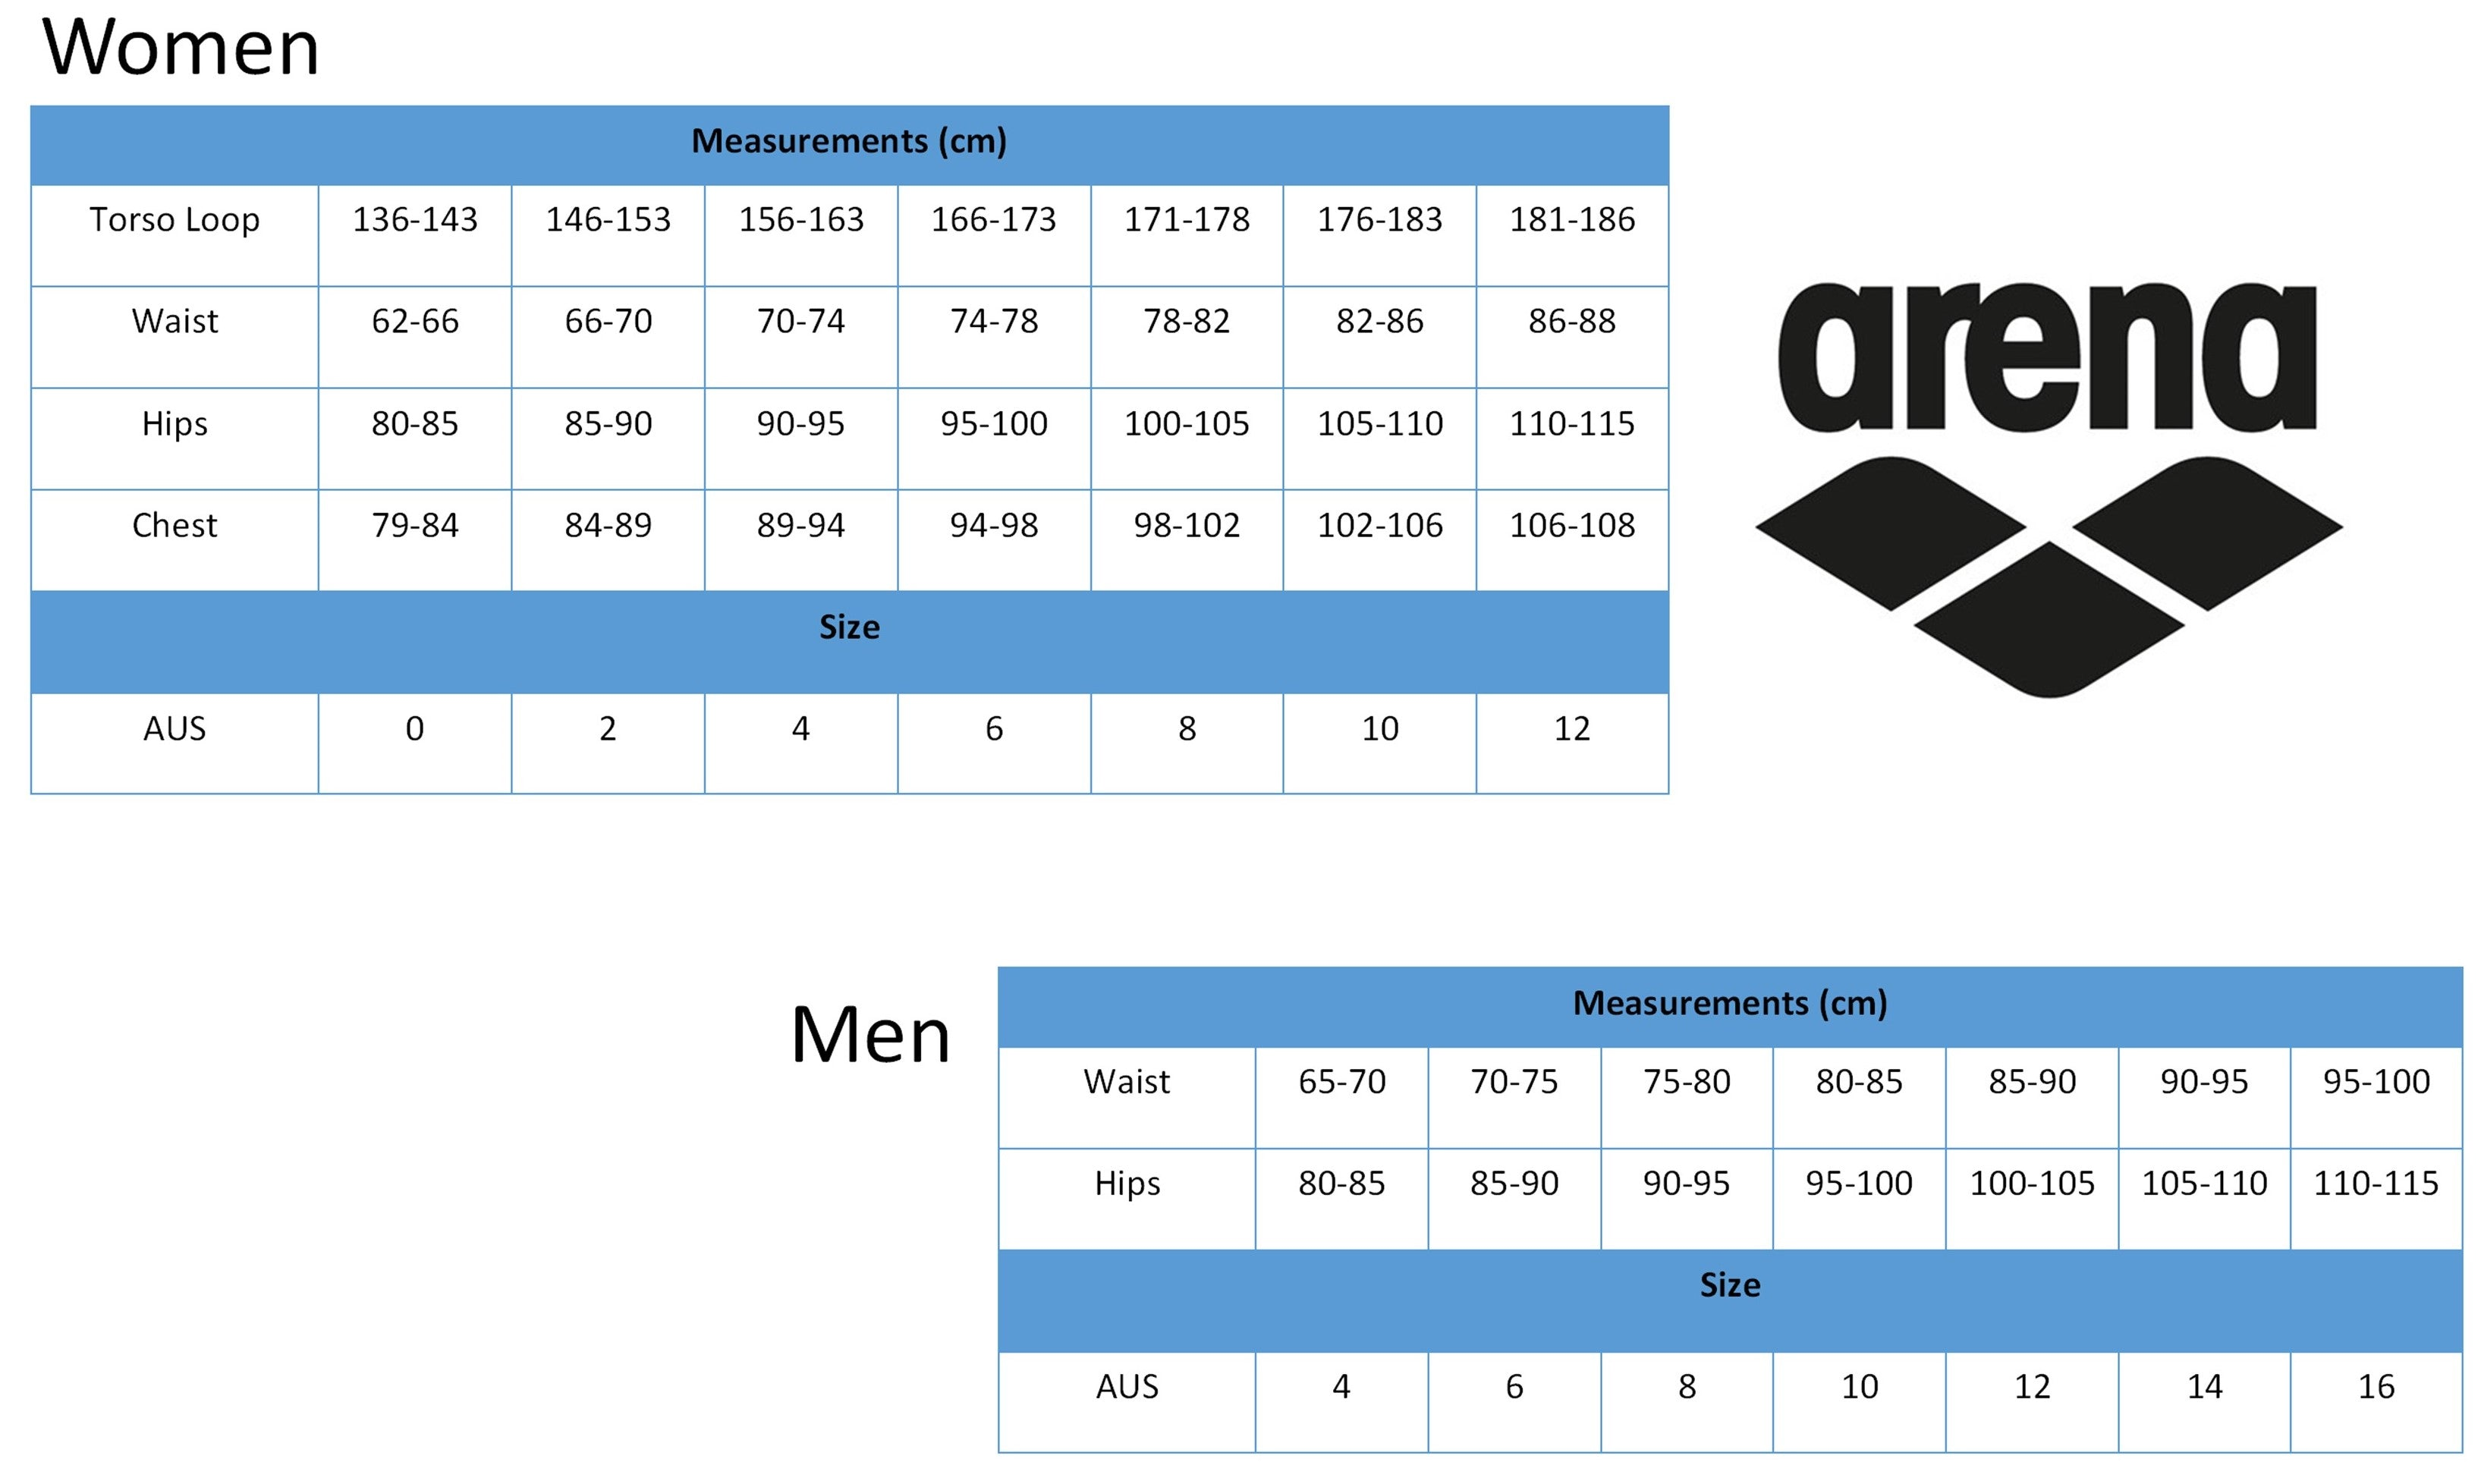 Arena Race adult sizes